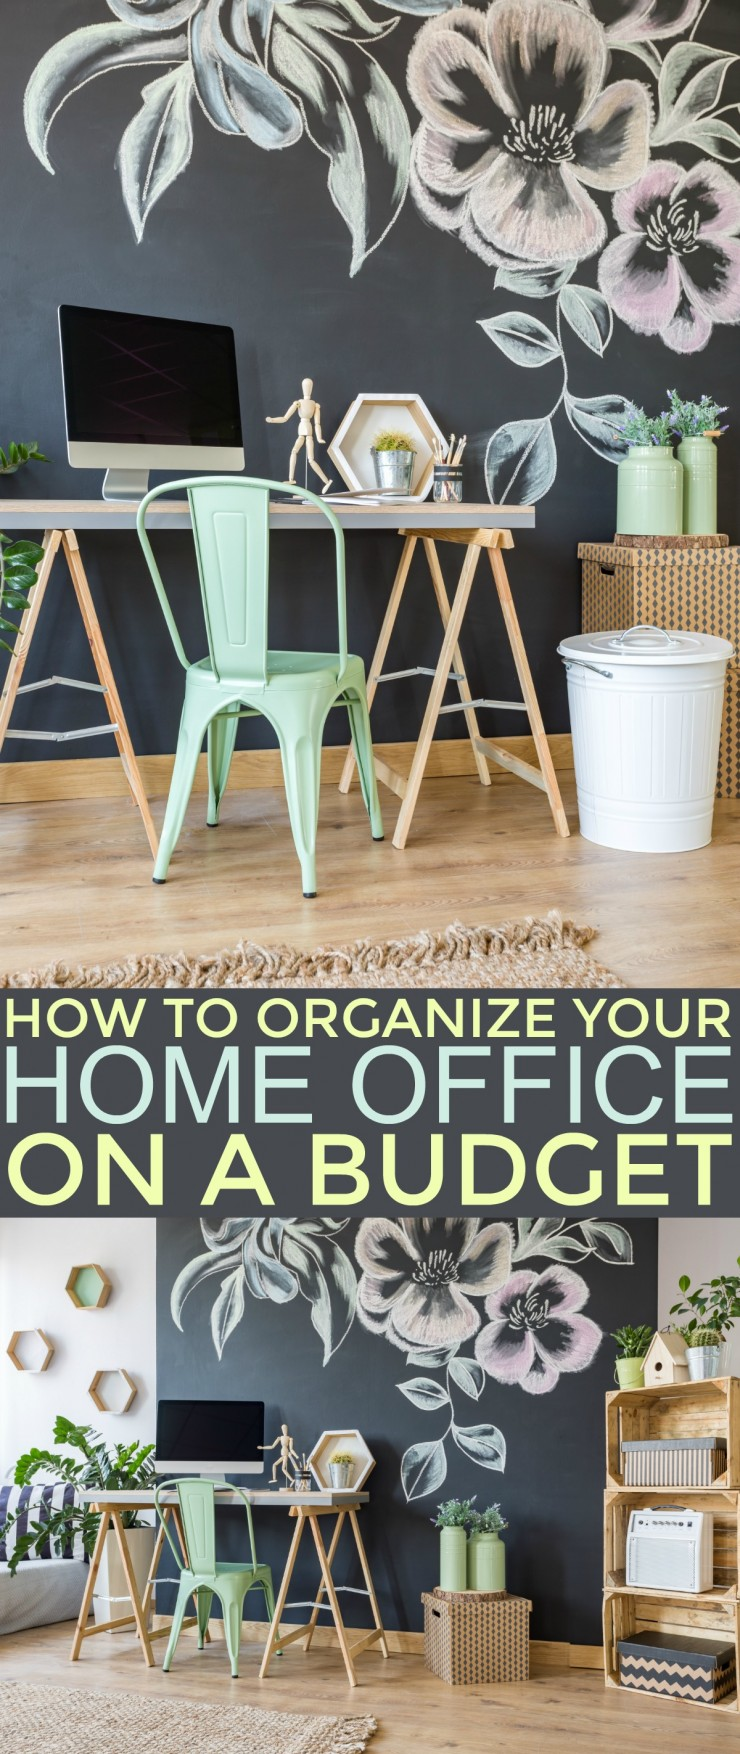 If you want to organize your home office and keep it organized, these tips to help you Organize Your Home Office on a Budget will help!